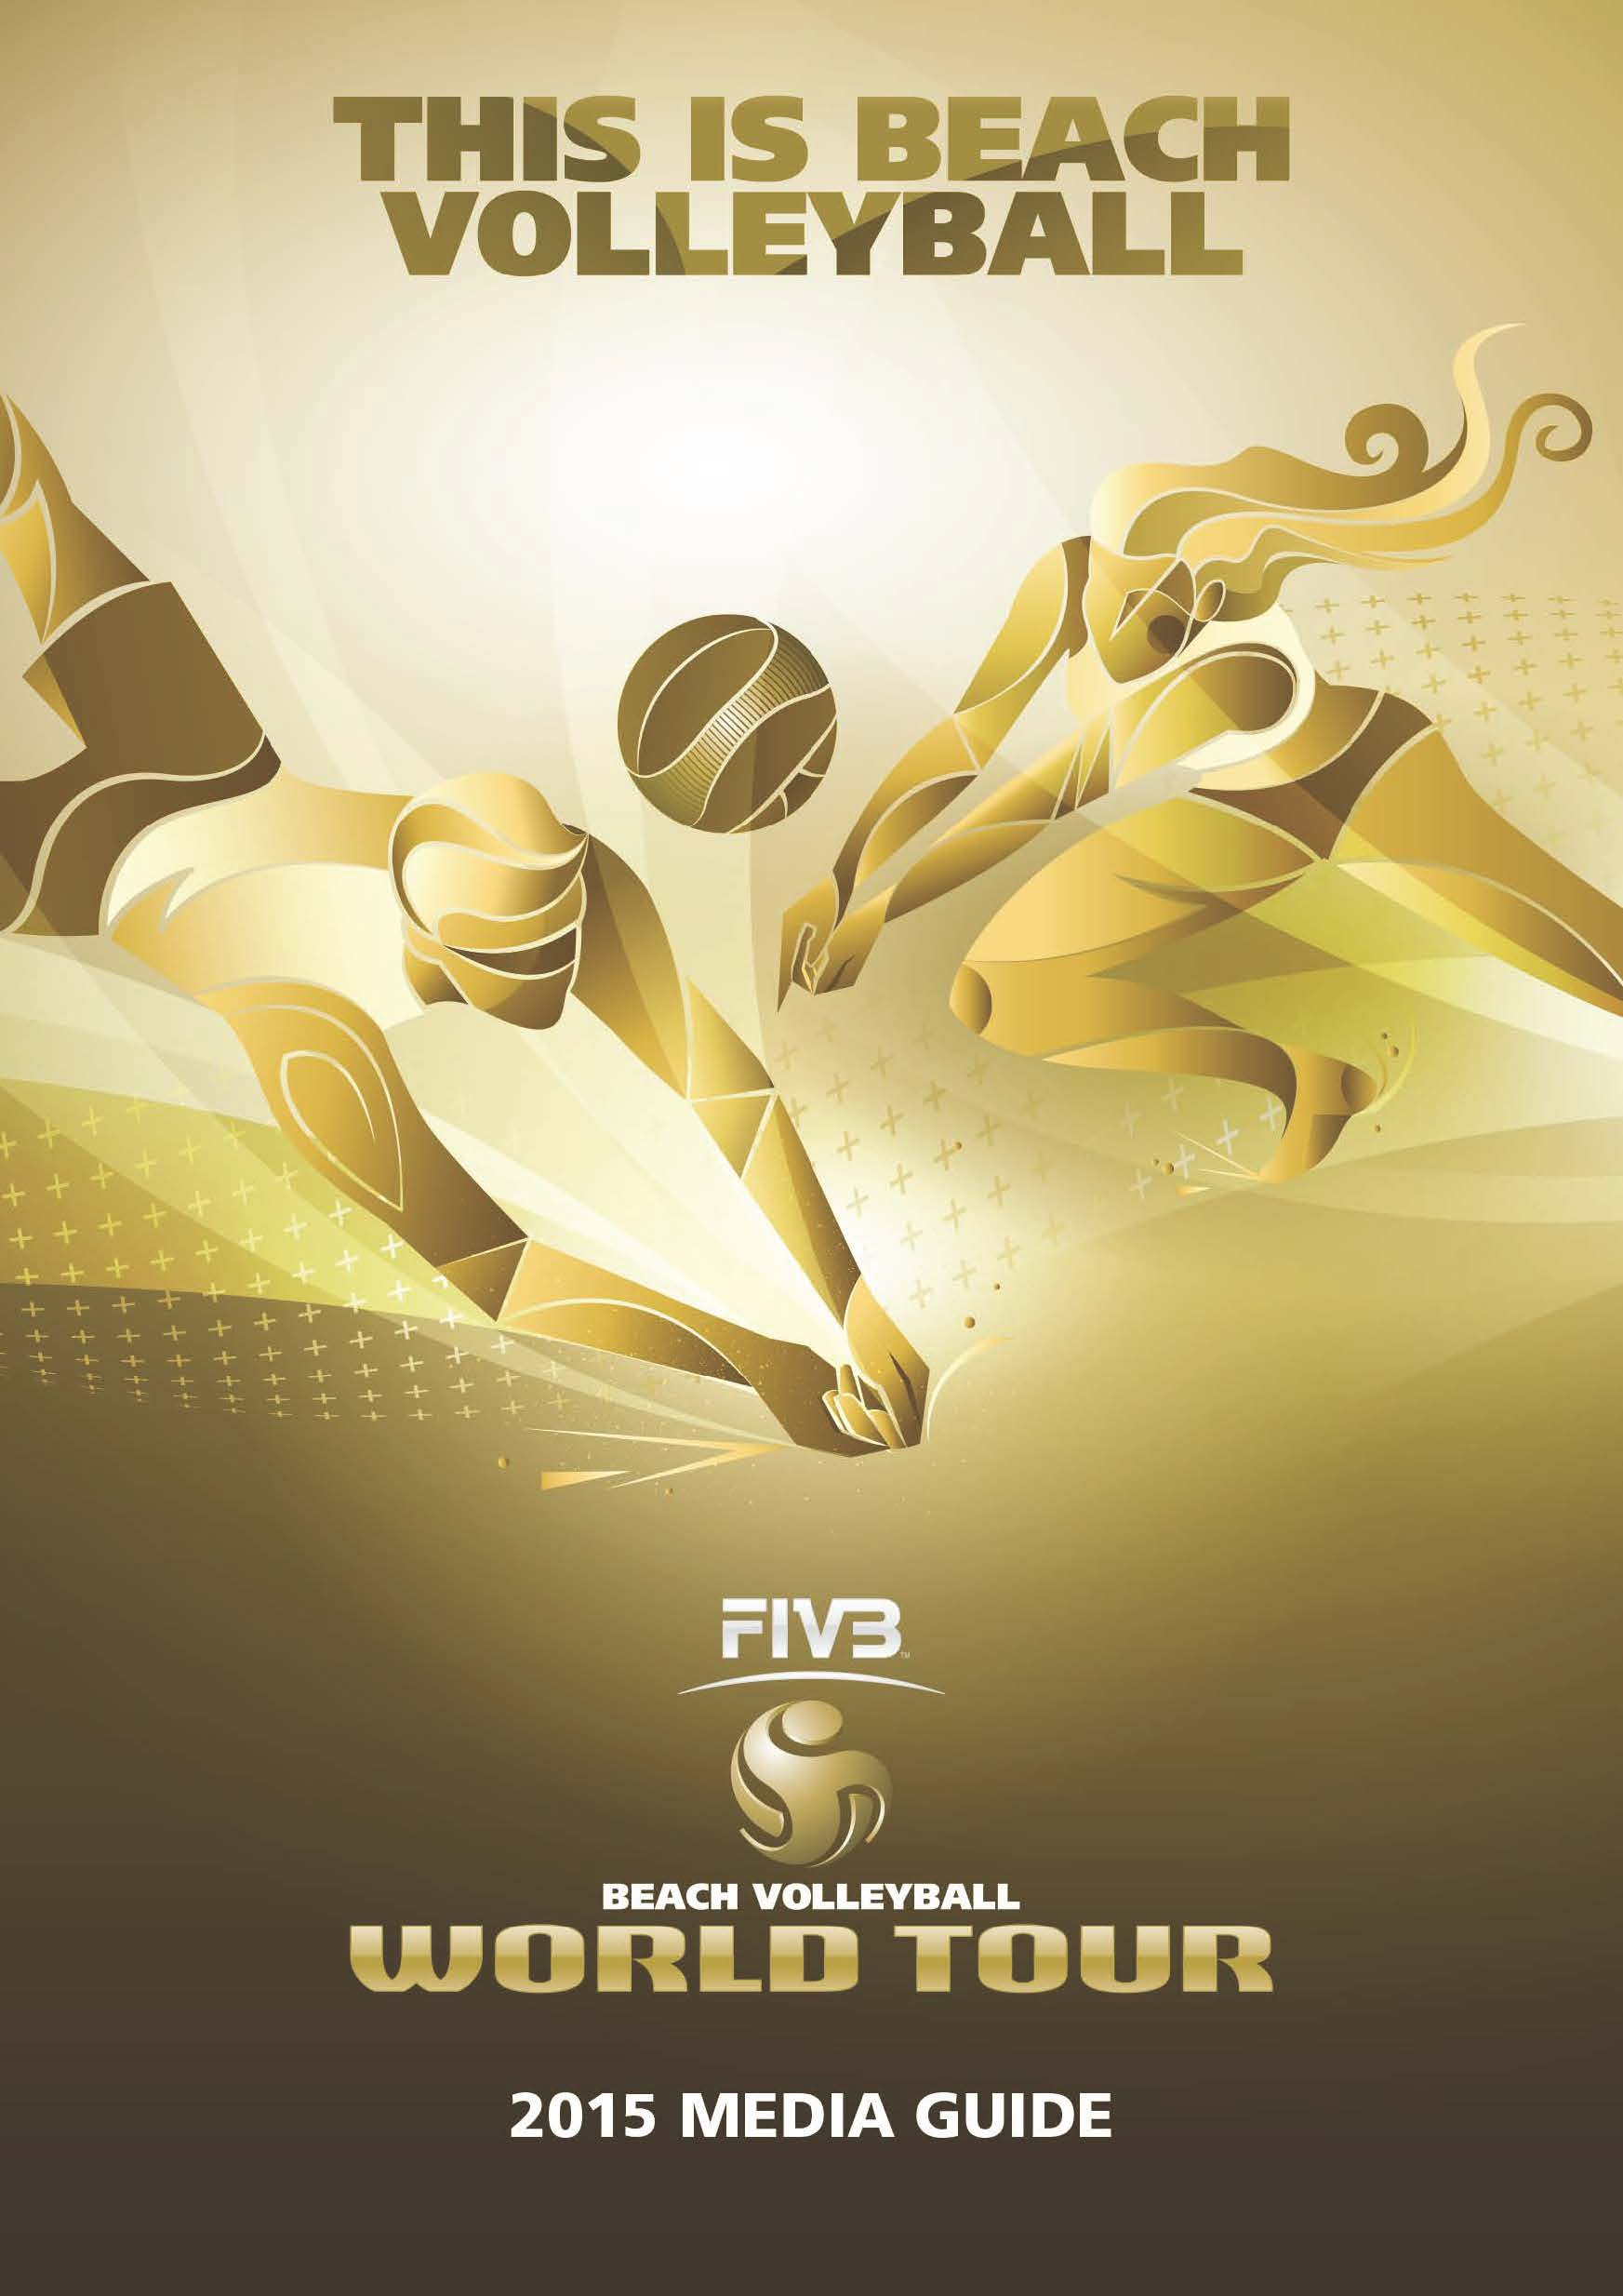 FIVB Beach Volleyball World Tour 2015 Media Guide